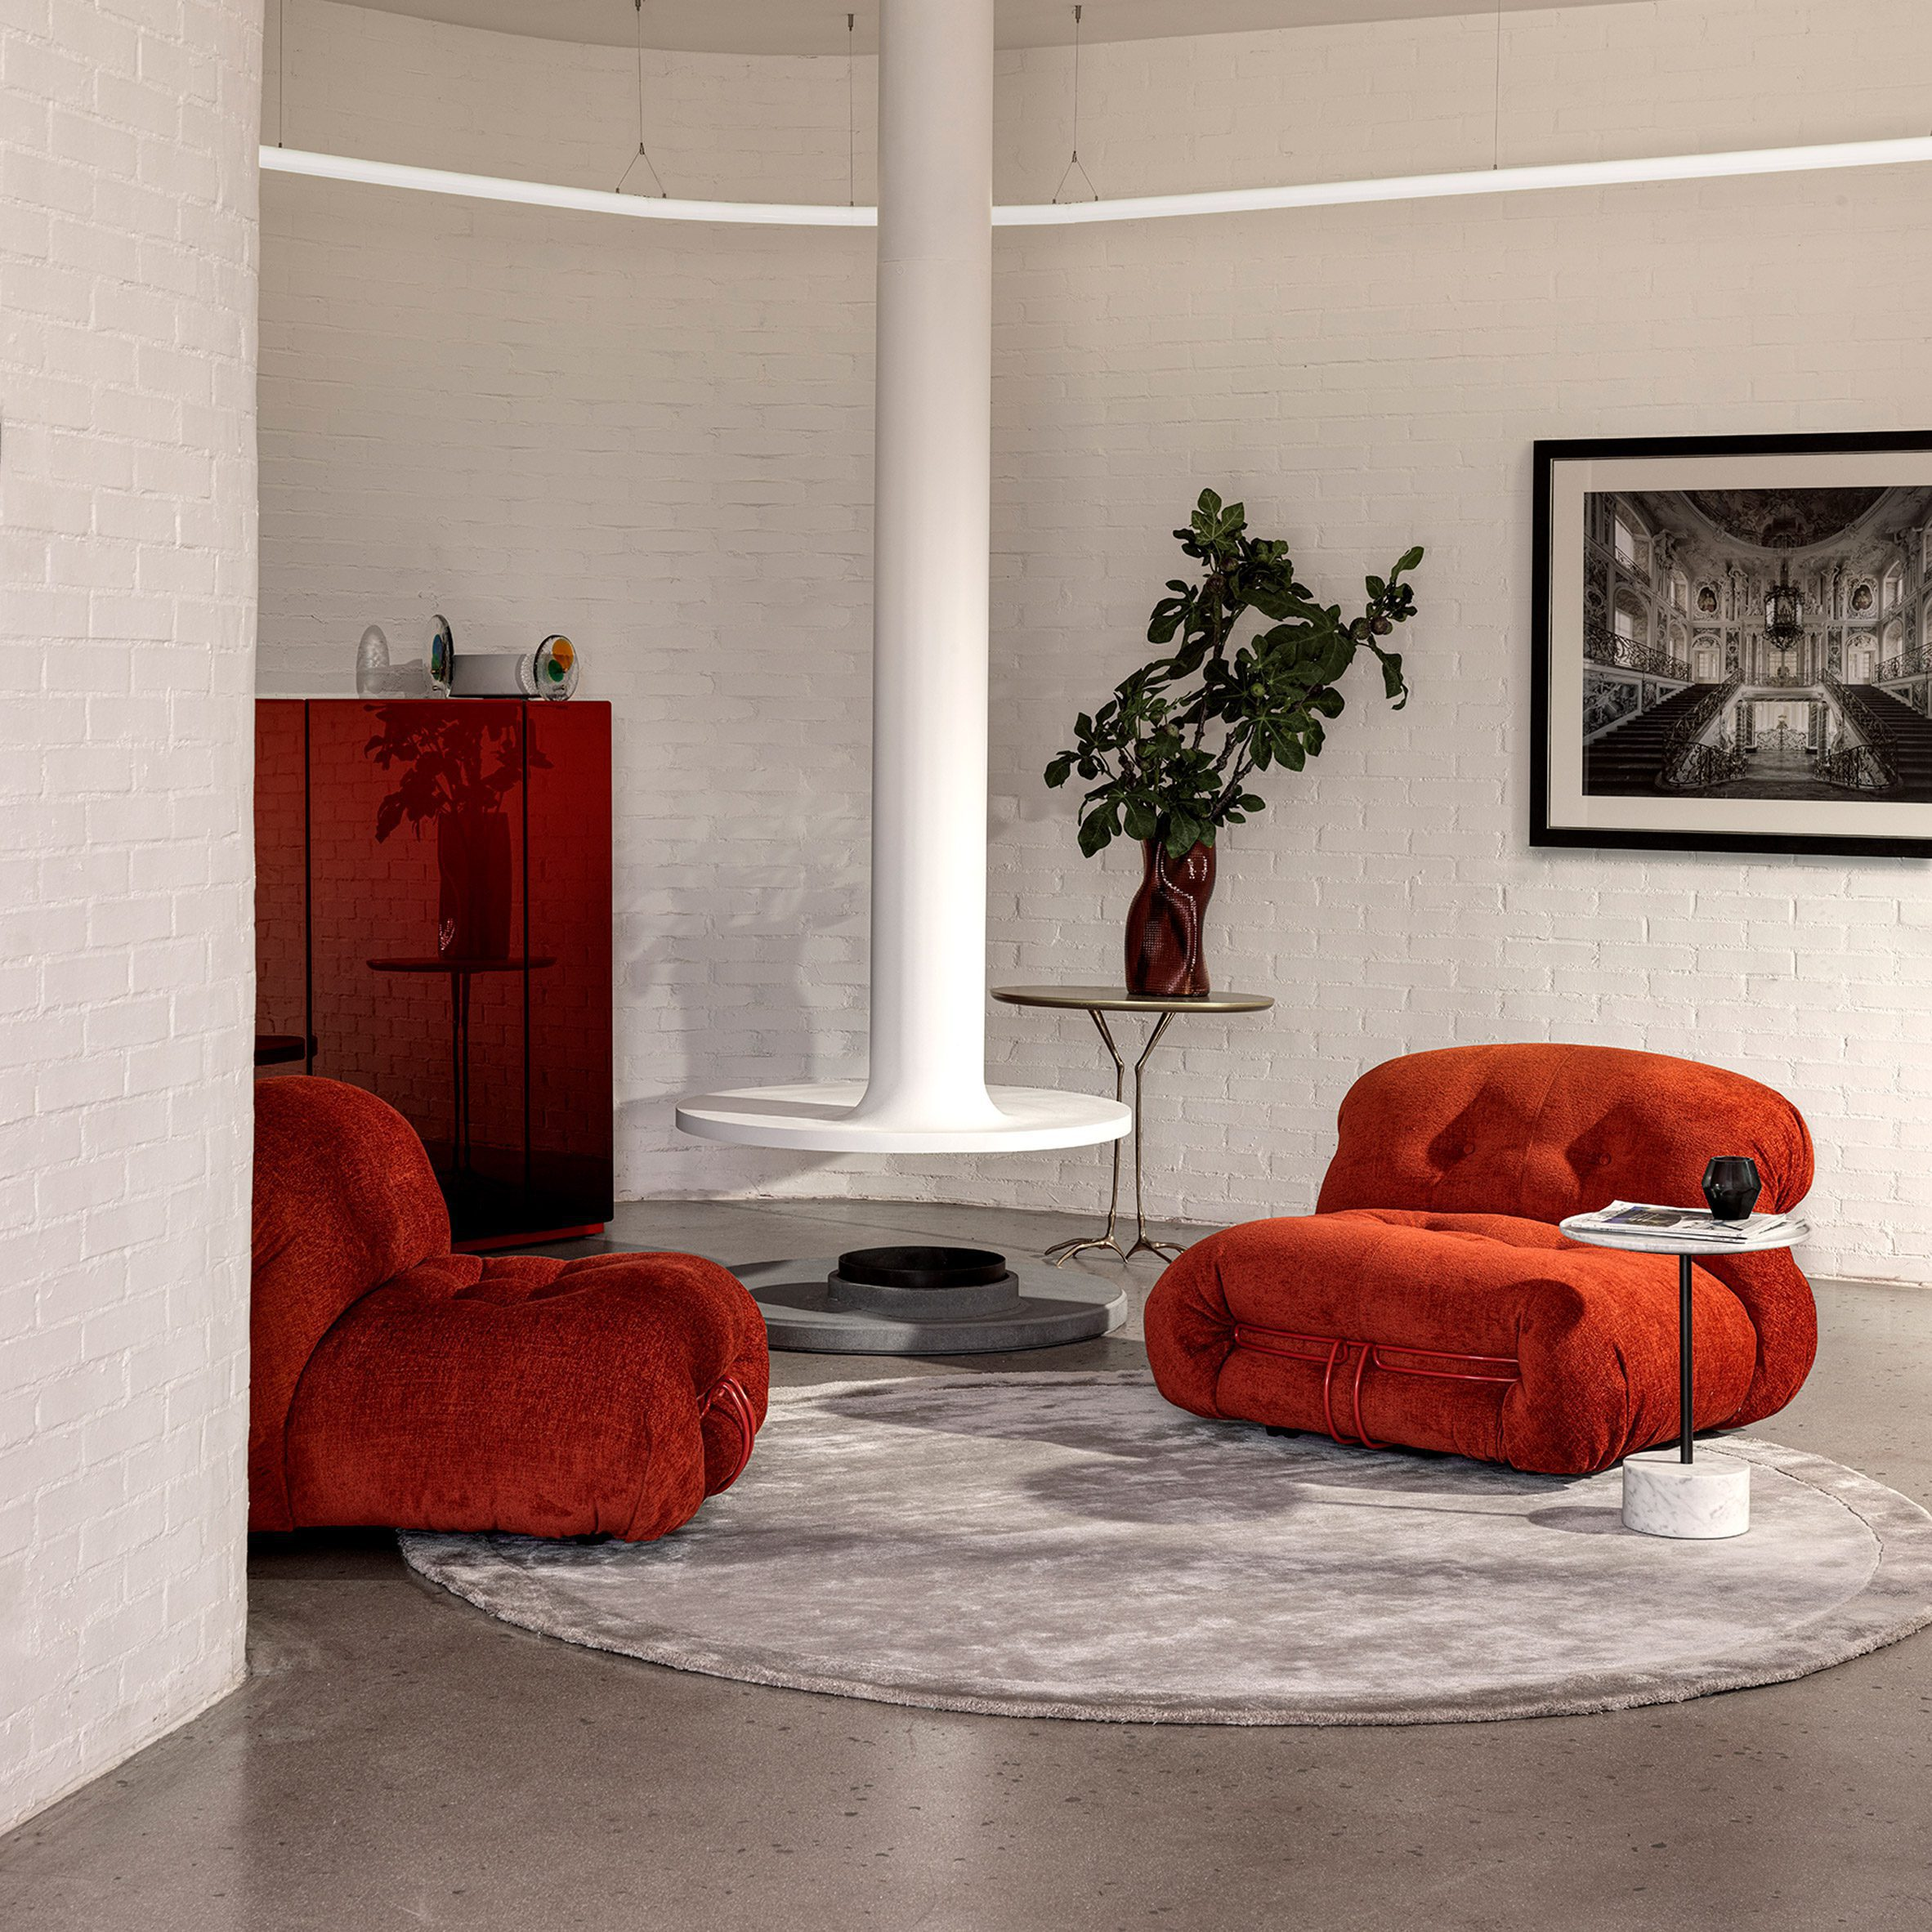 Soriana seating by Afra and Tobia Scarpa for Cassina